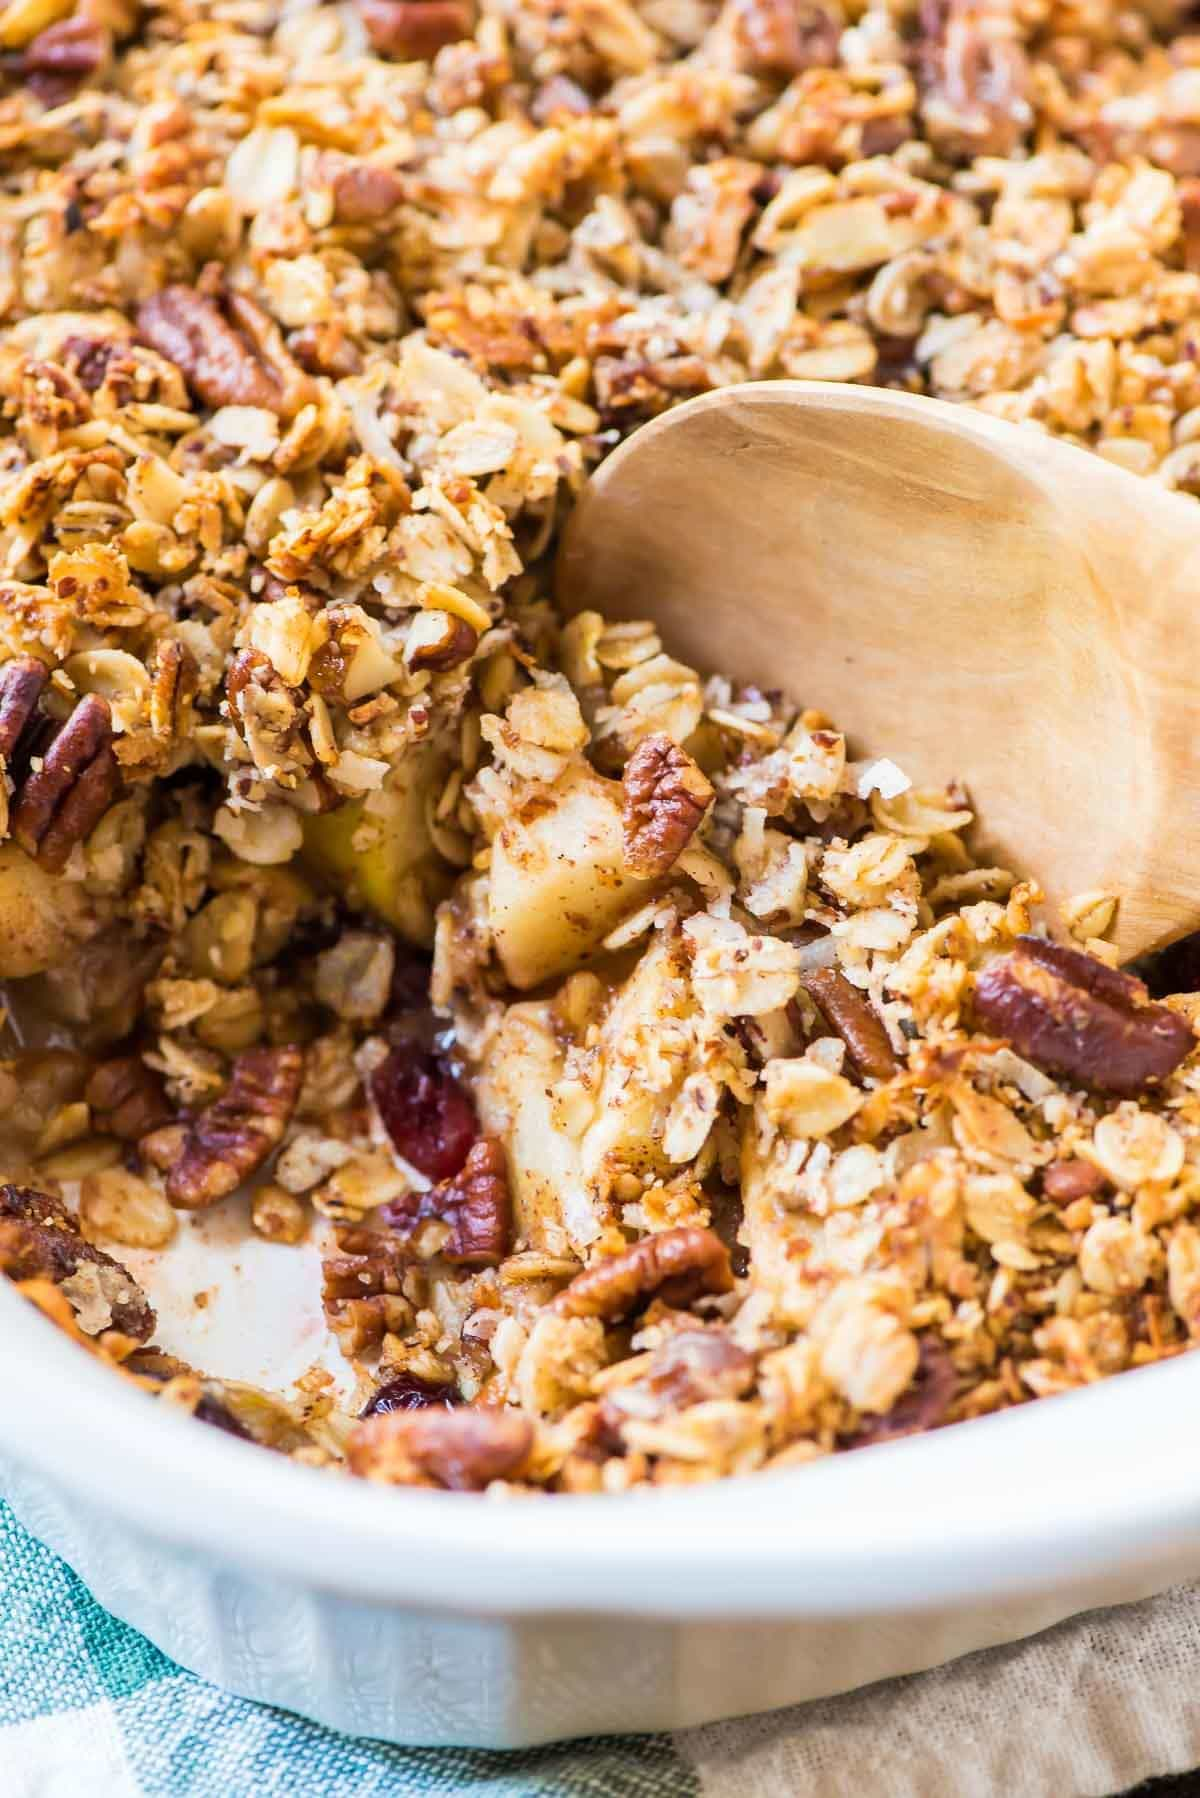 Award-winning Vegan Apple Crisp with Pecan Oat Topping. BEST healthy apple crisp and it's gluten free too! @wellplated